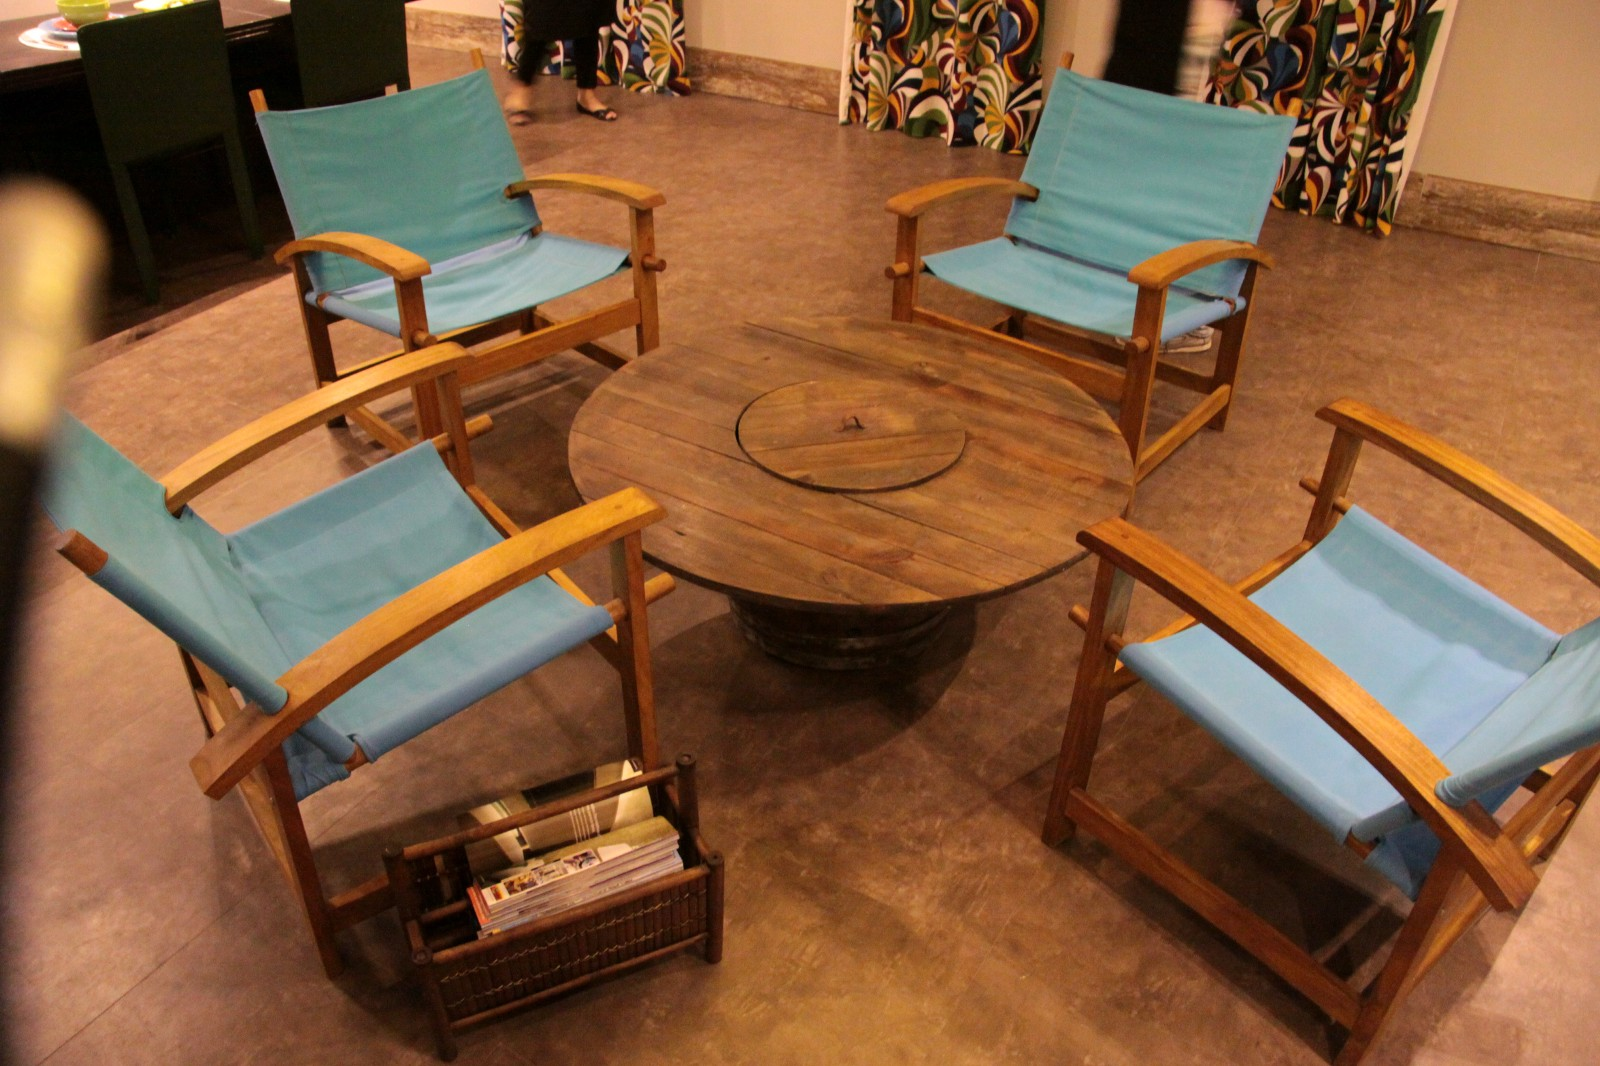 The advantages and disadvantages of custom made furniture